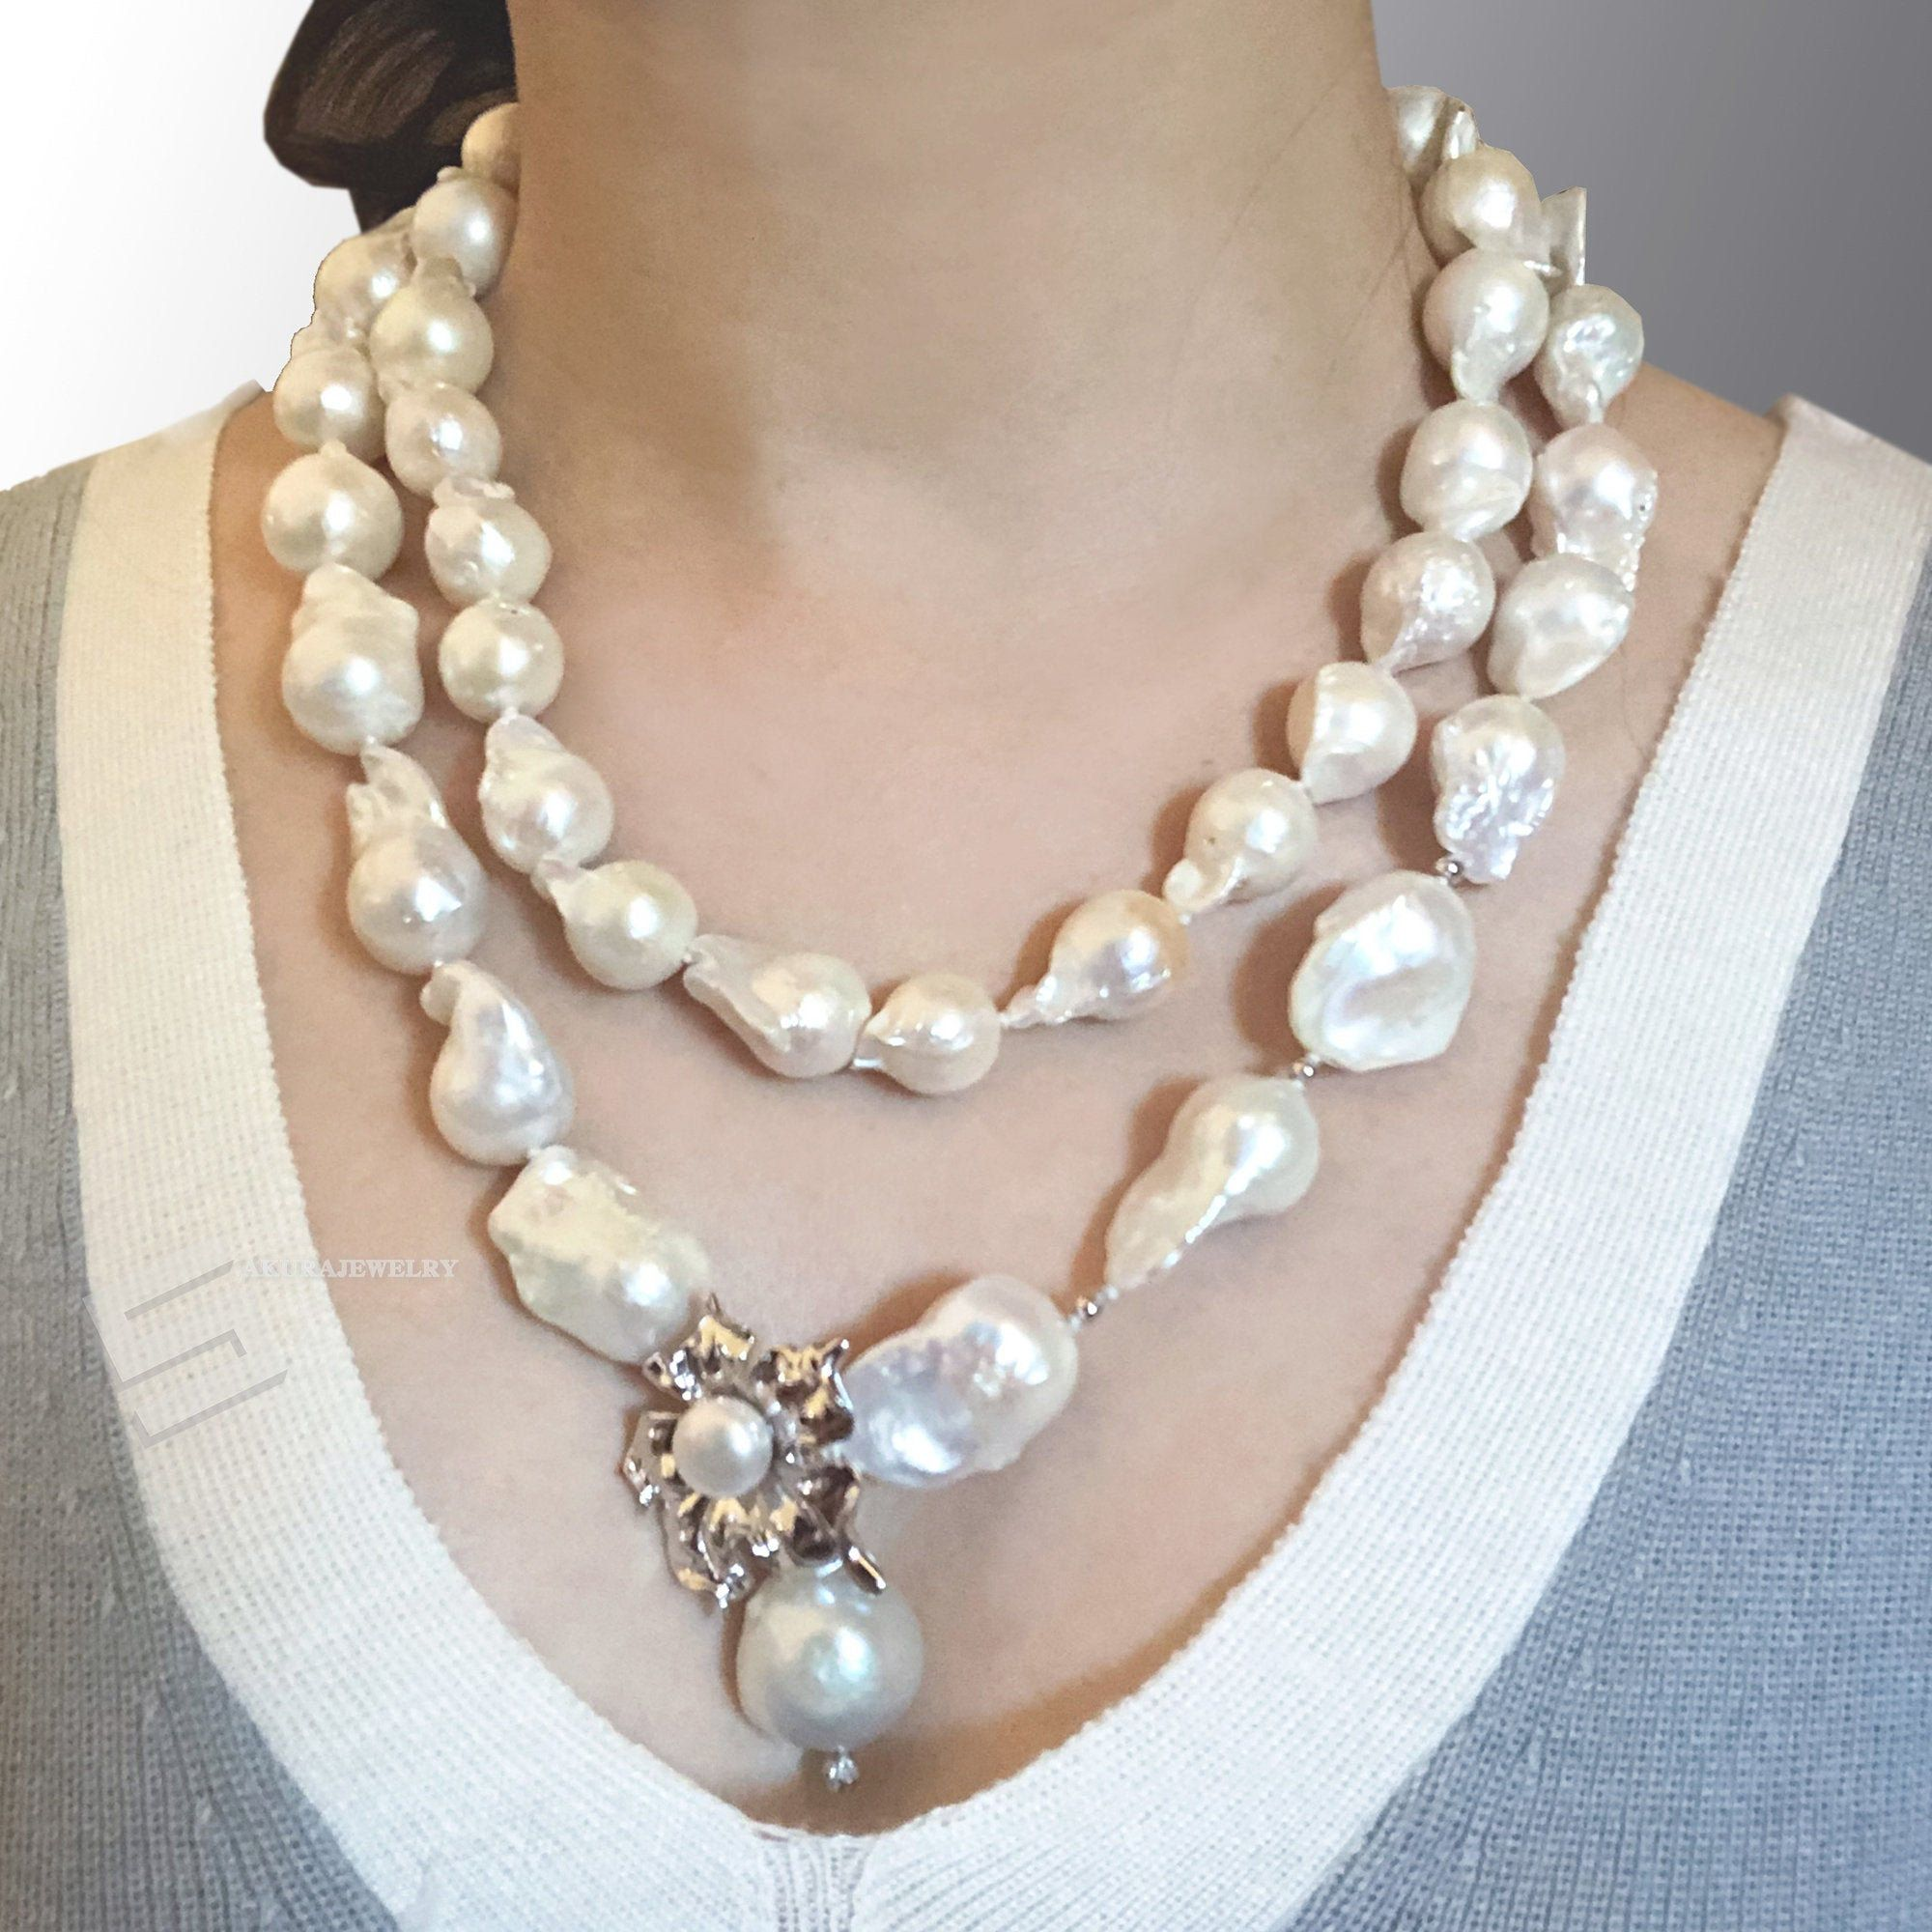 Natural Fresh Water Pearl White Color Necklace Sterling Silver Clasp For Women Fashion Wear and All Occasions Perfect for Gifts AAAA Quality